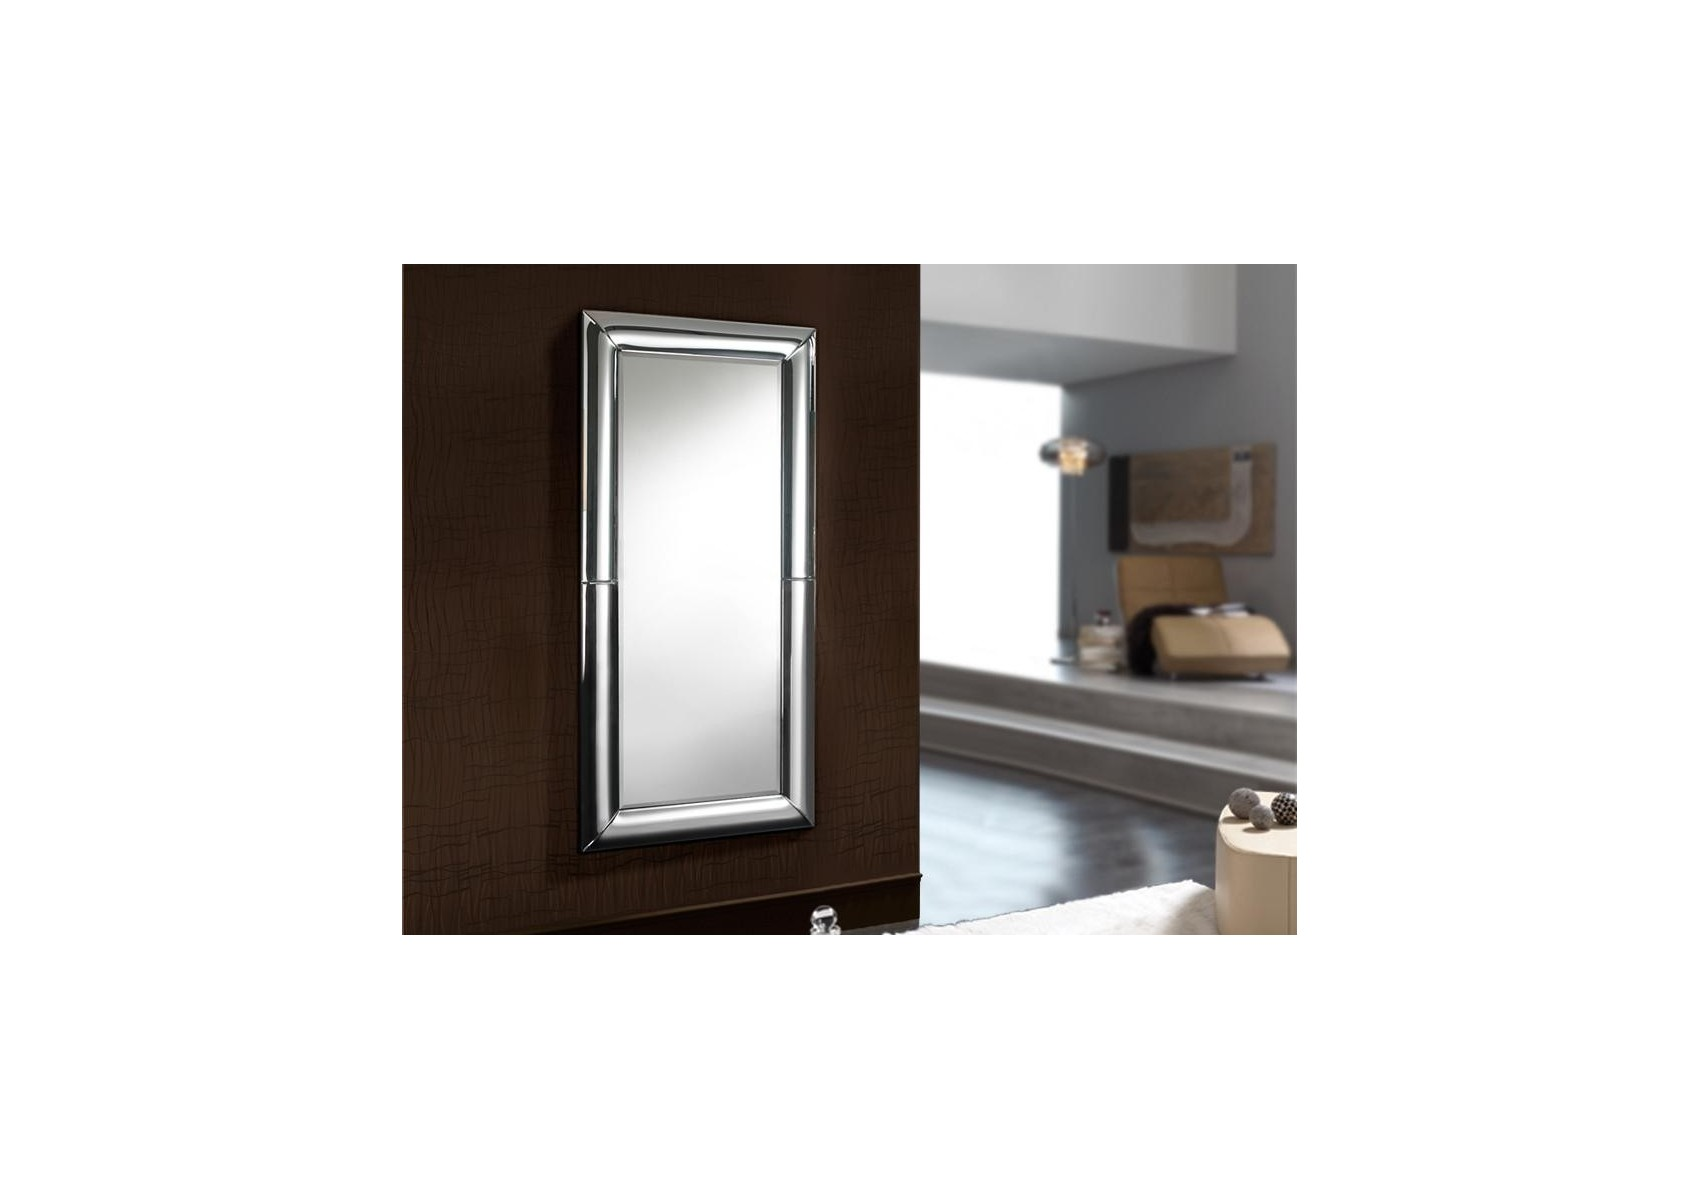 Miroir design curves deco originale schuller boite for Architecture originale